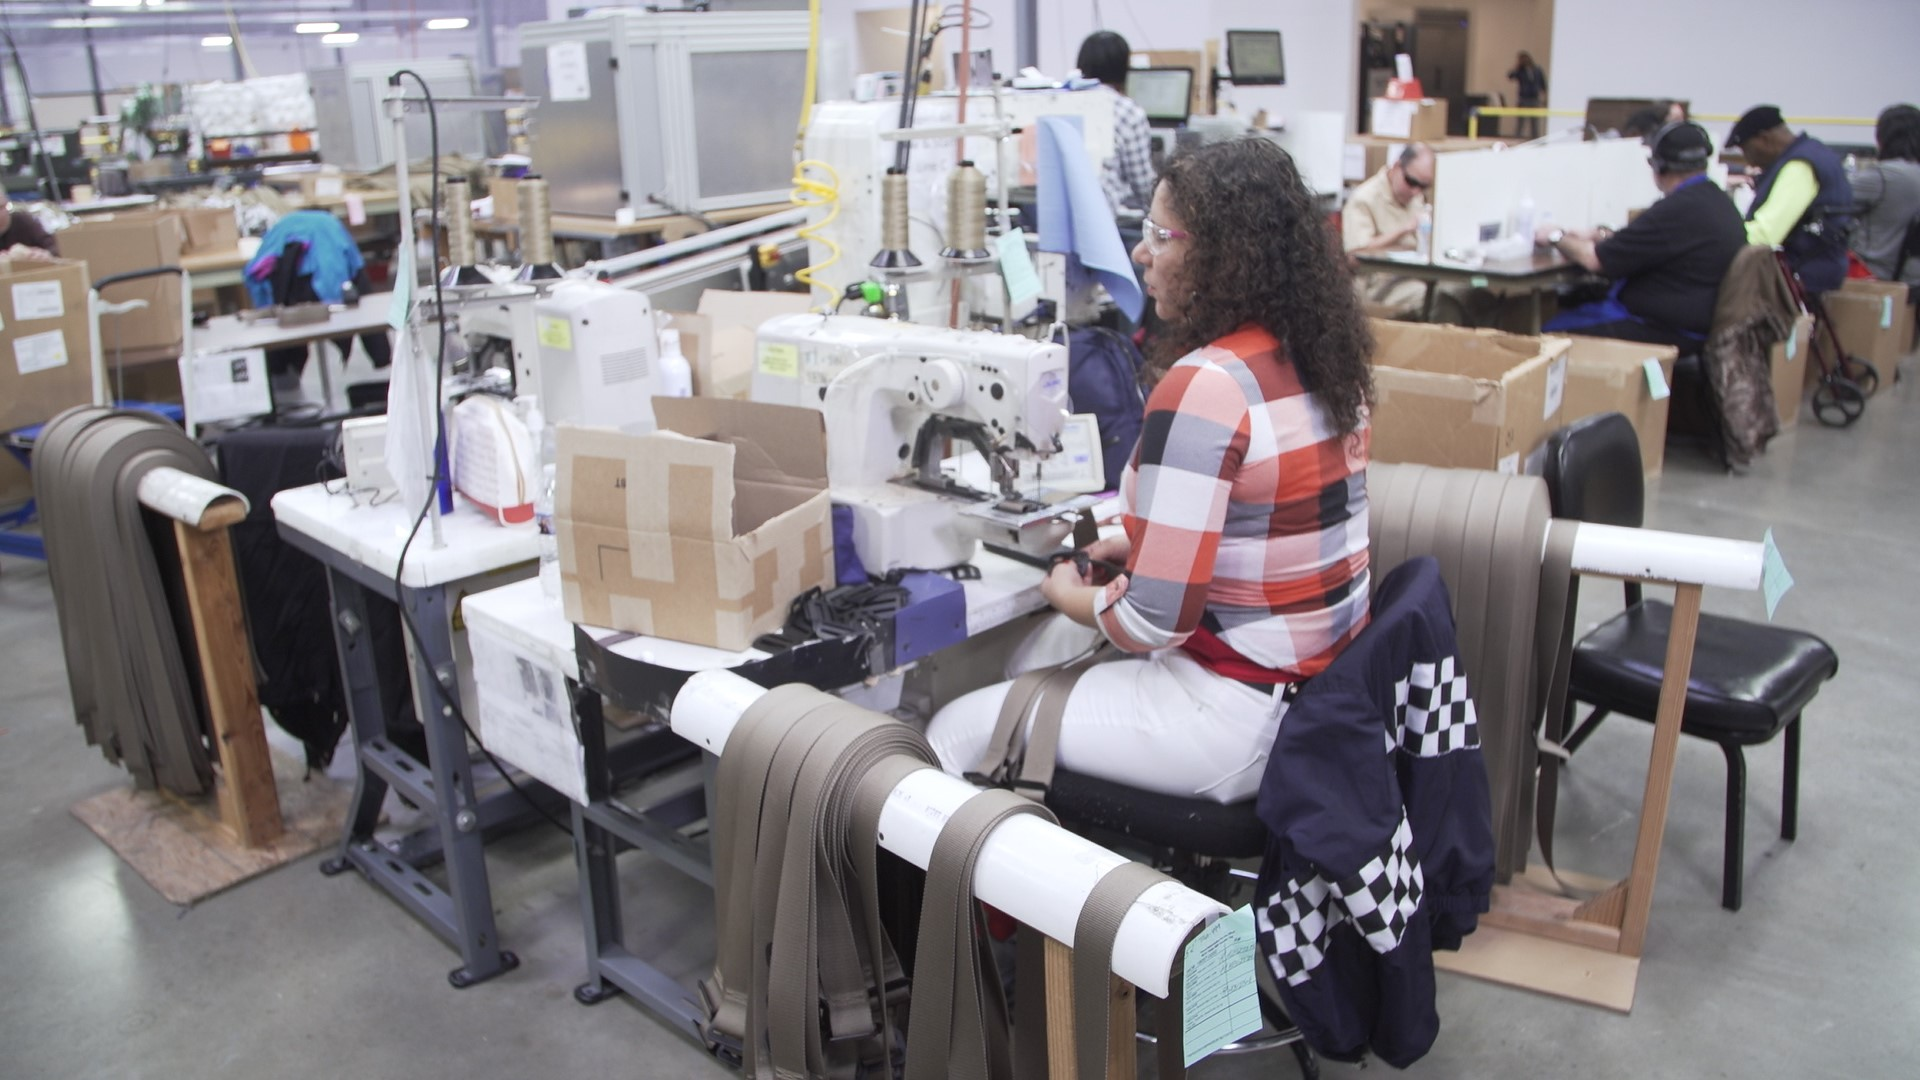 woman who is blind operating an industrial sewing machine